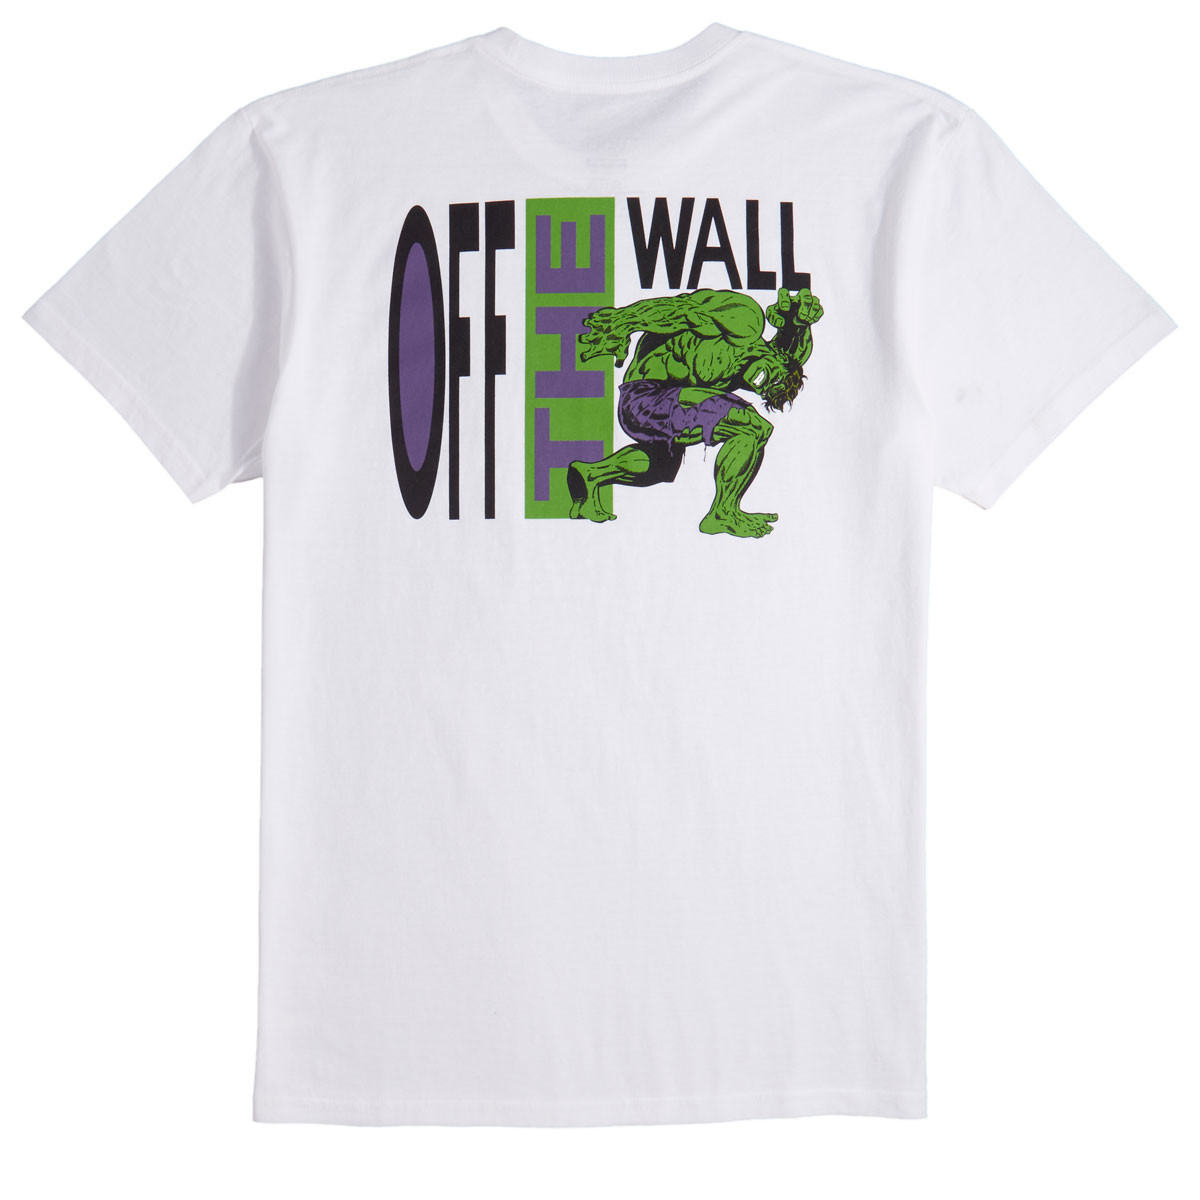 Vans x Marvel Hulk T-Shirt - White